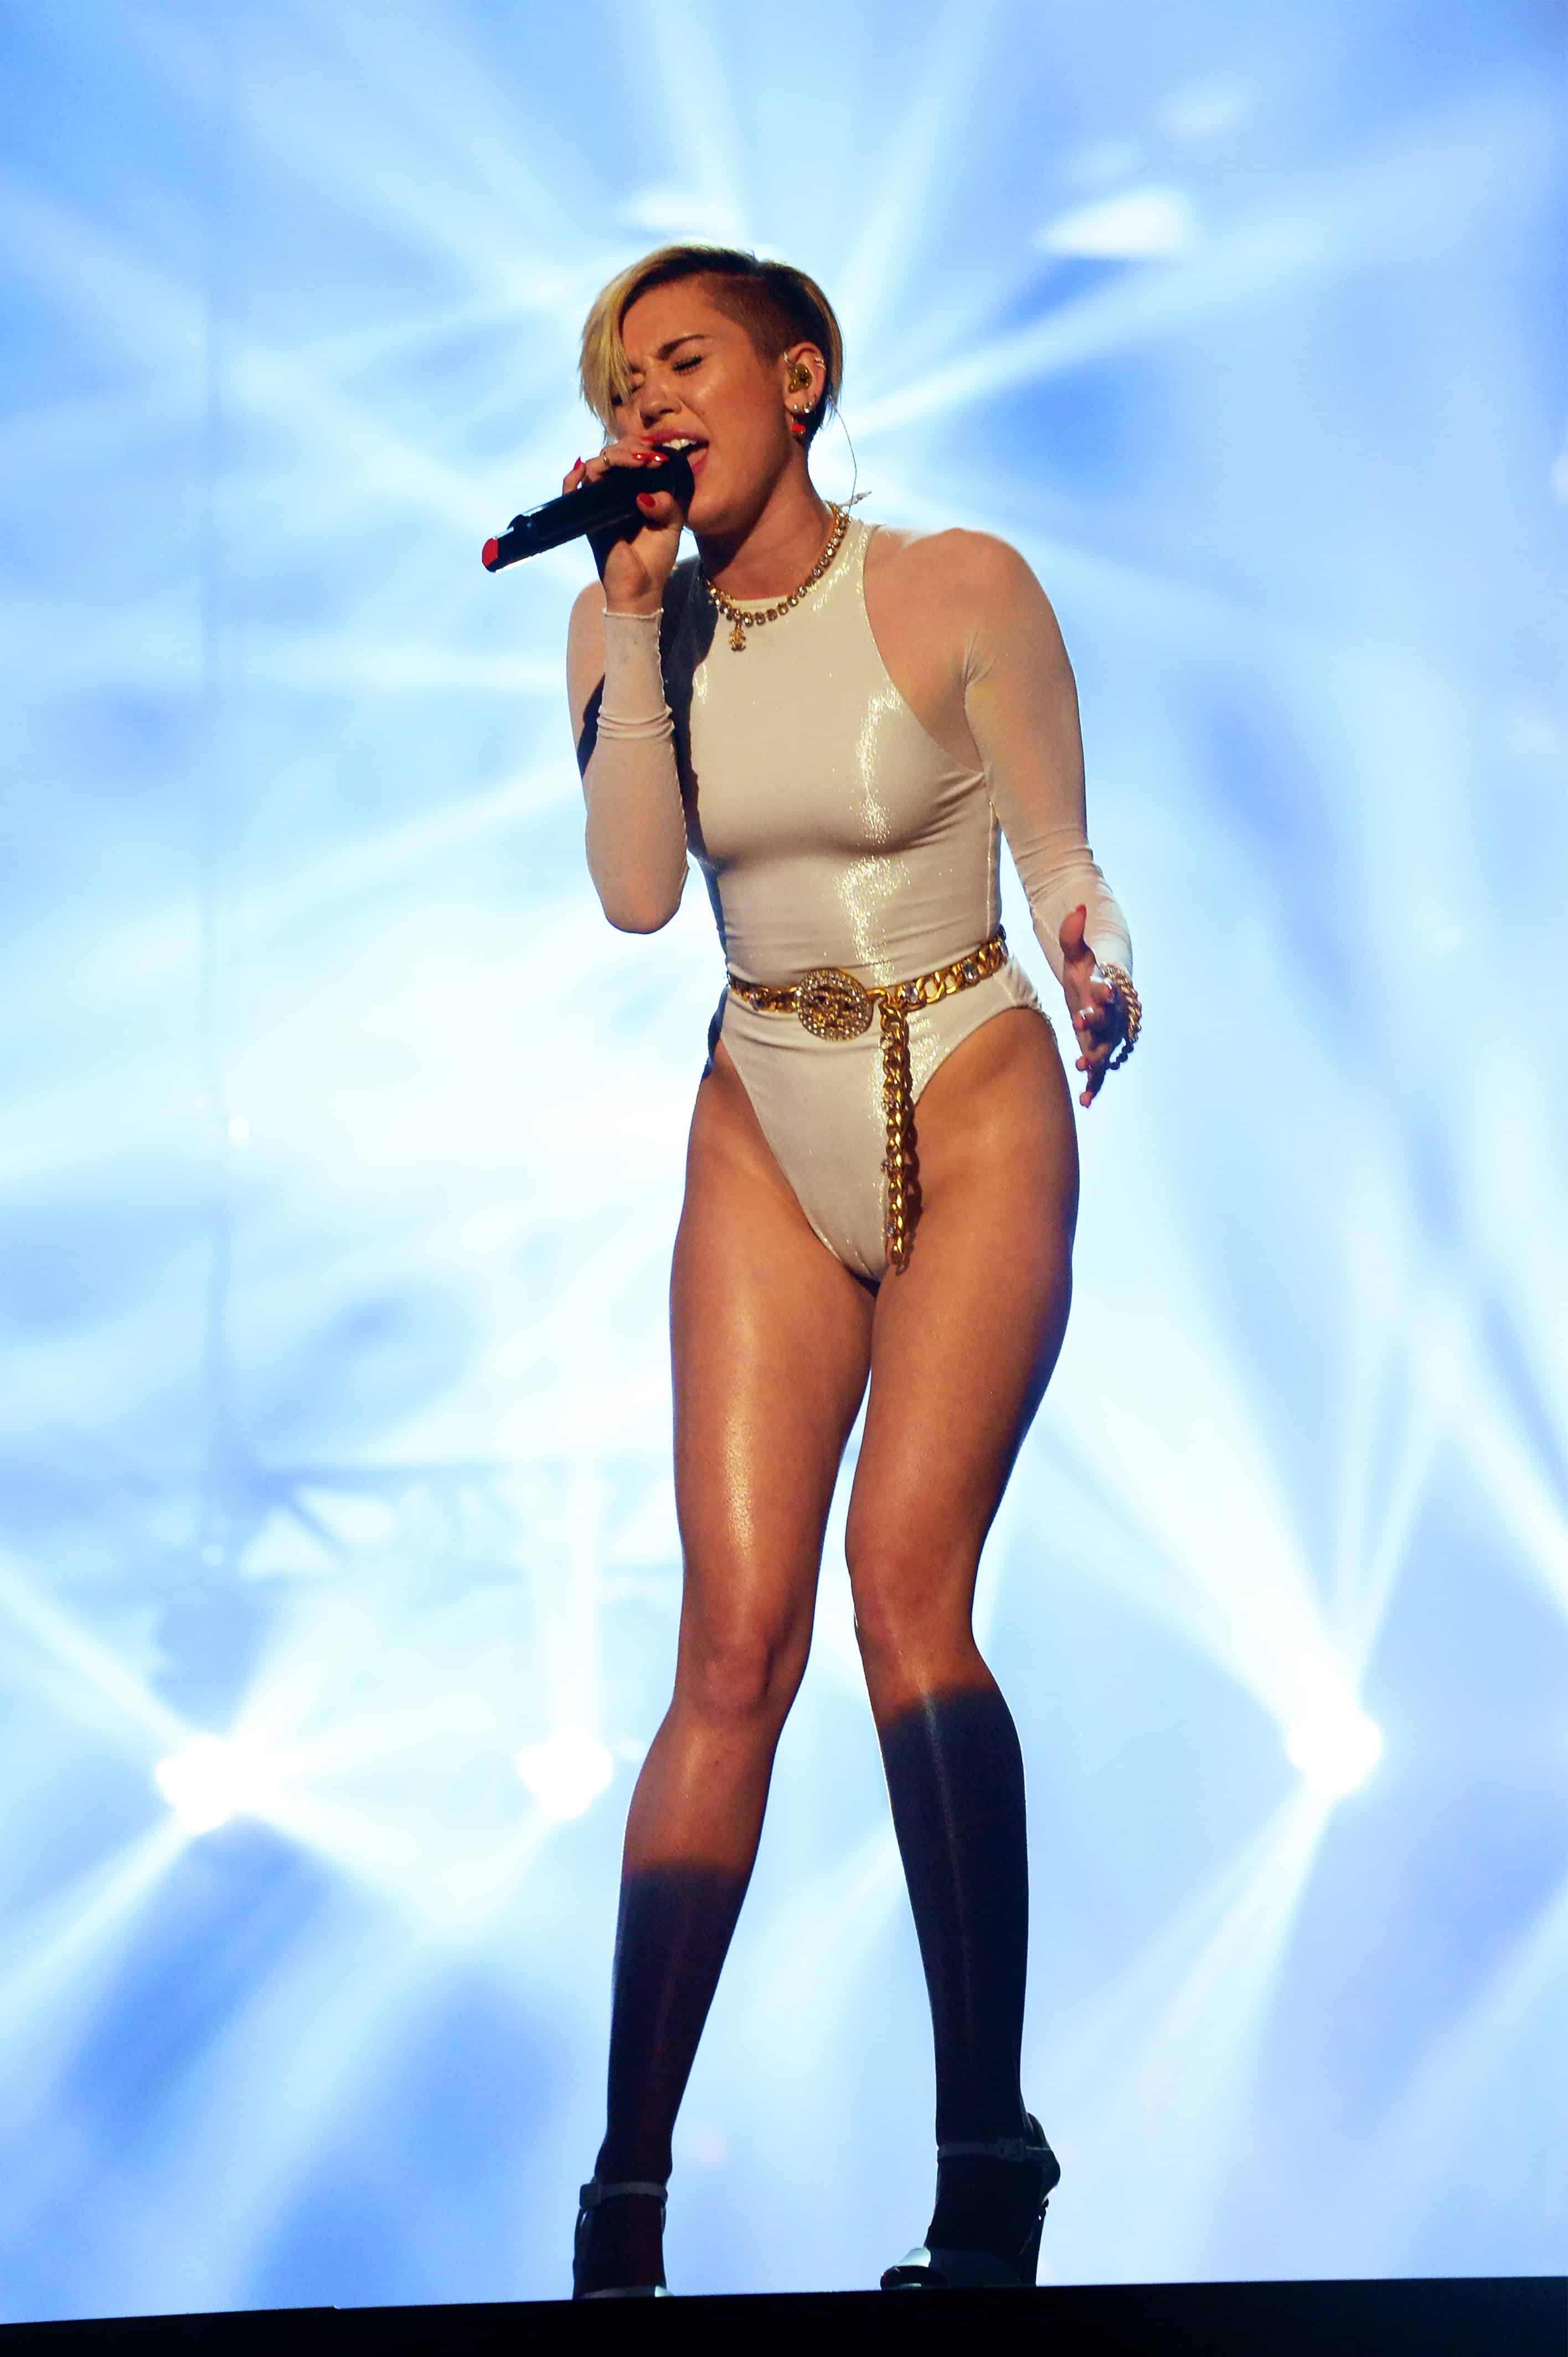 bc2ccf5d33 Miley Cyrus Smokes Joint On Stage During Acceptance Speech ...